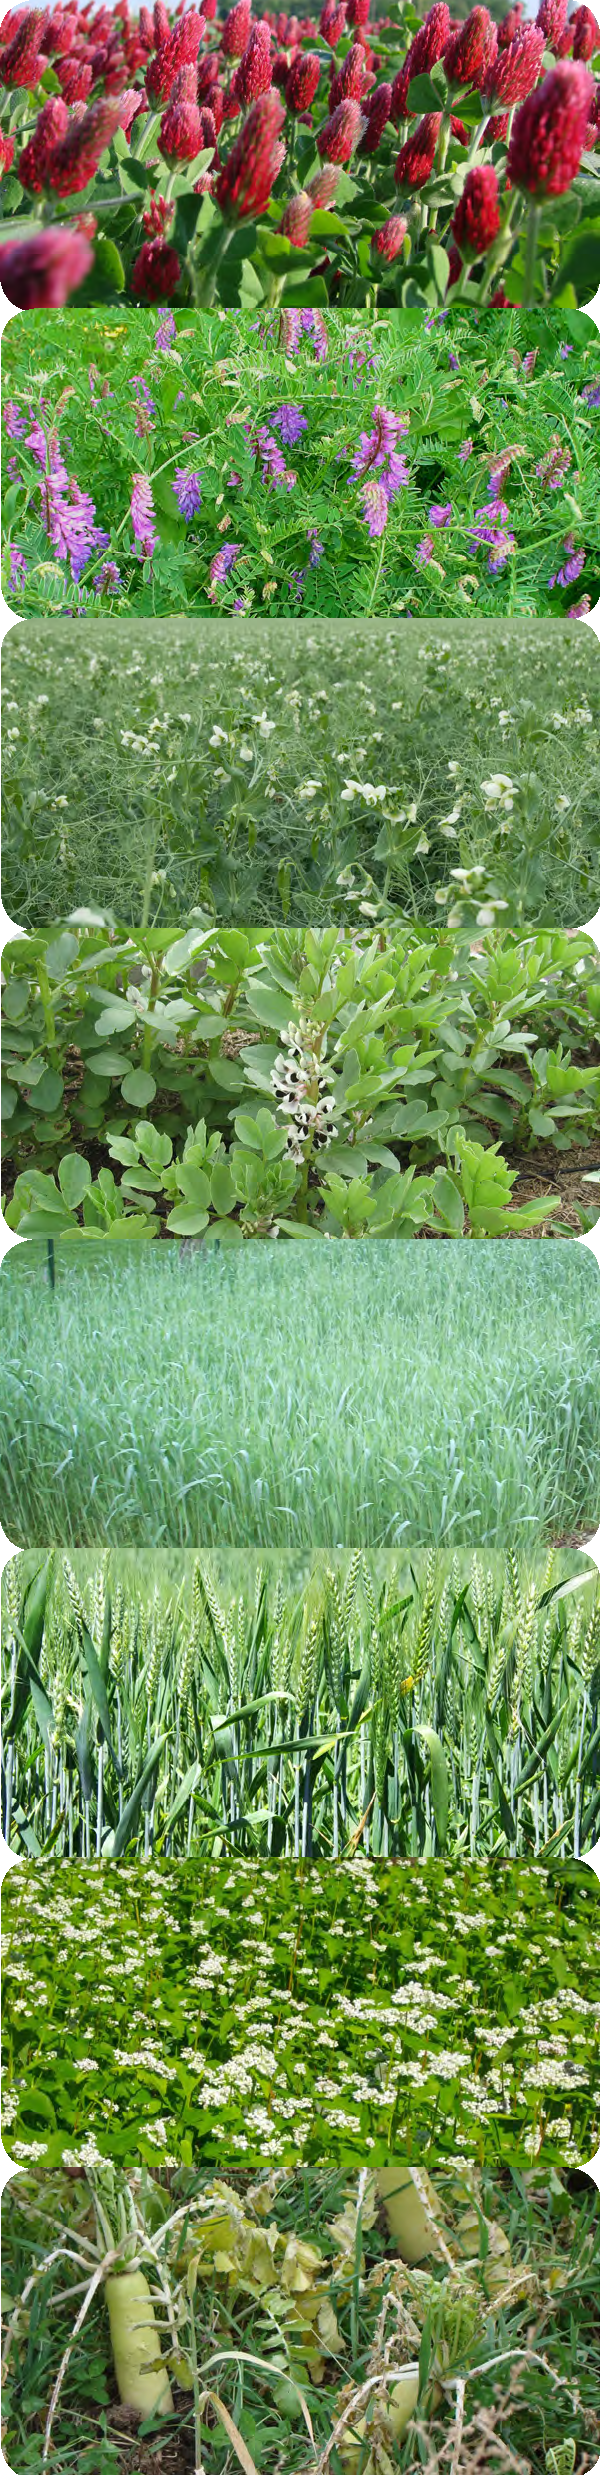 covercrop pictures